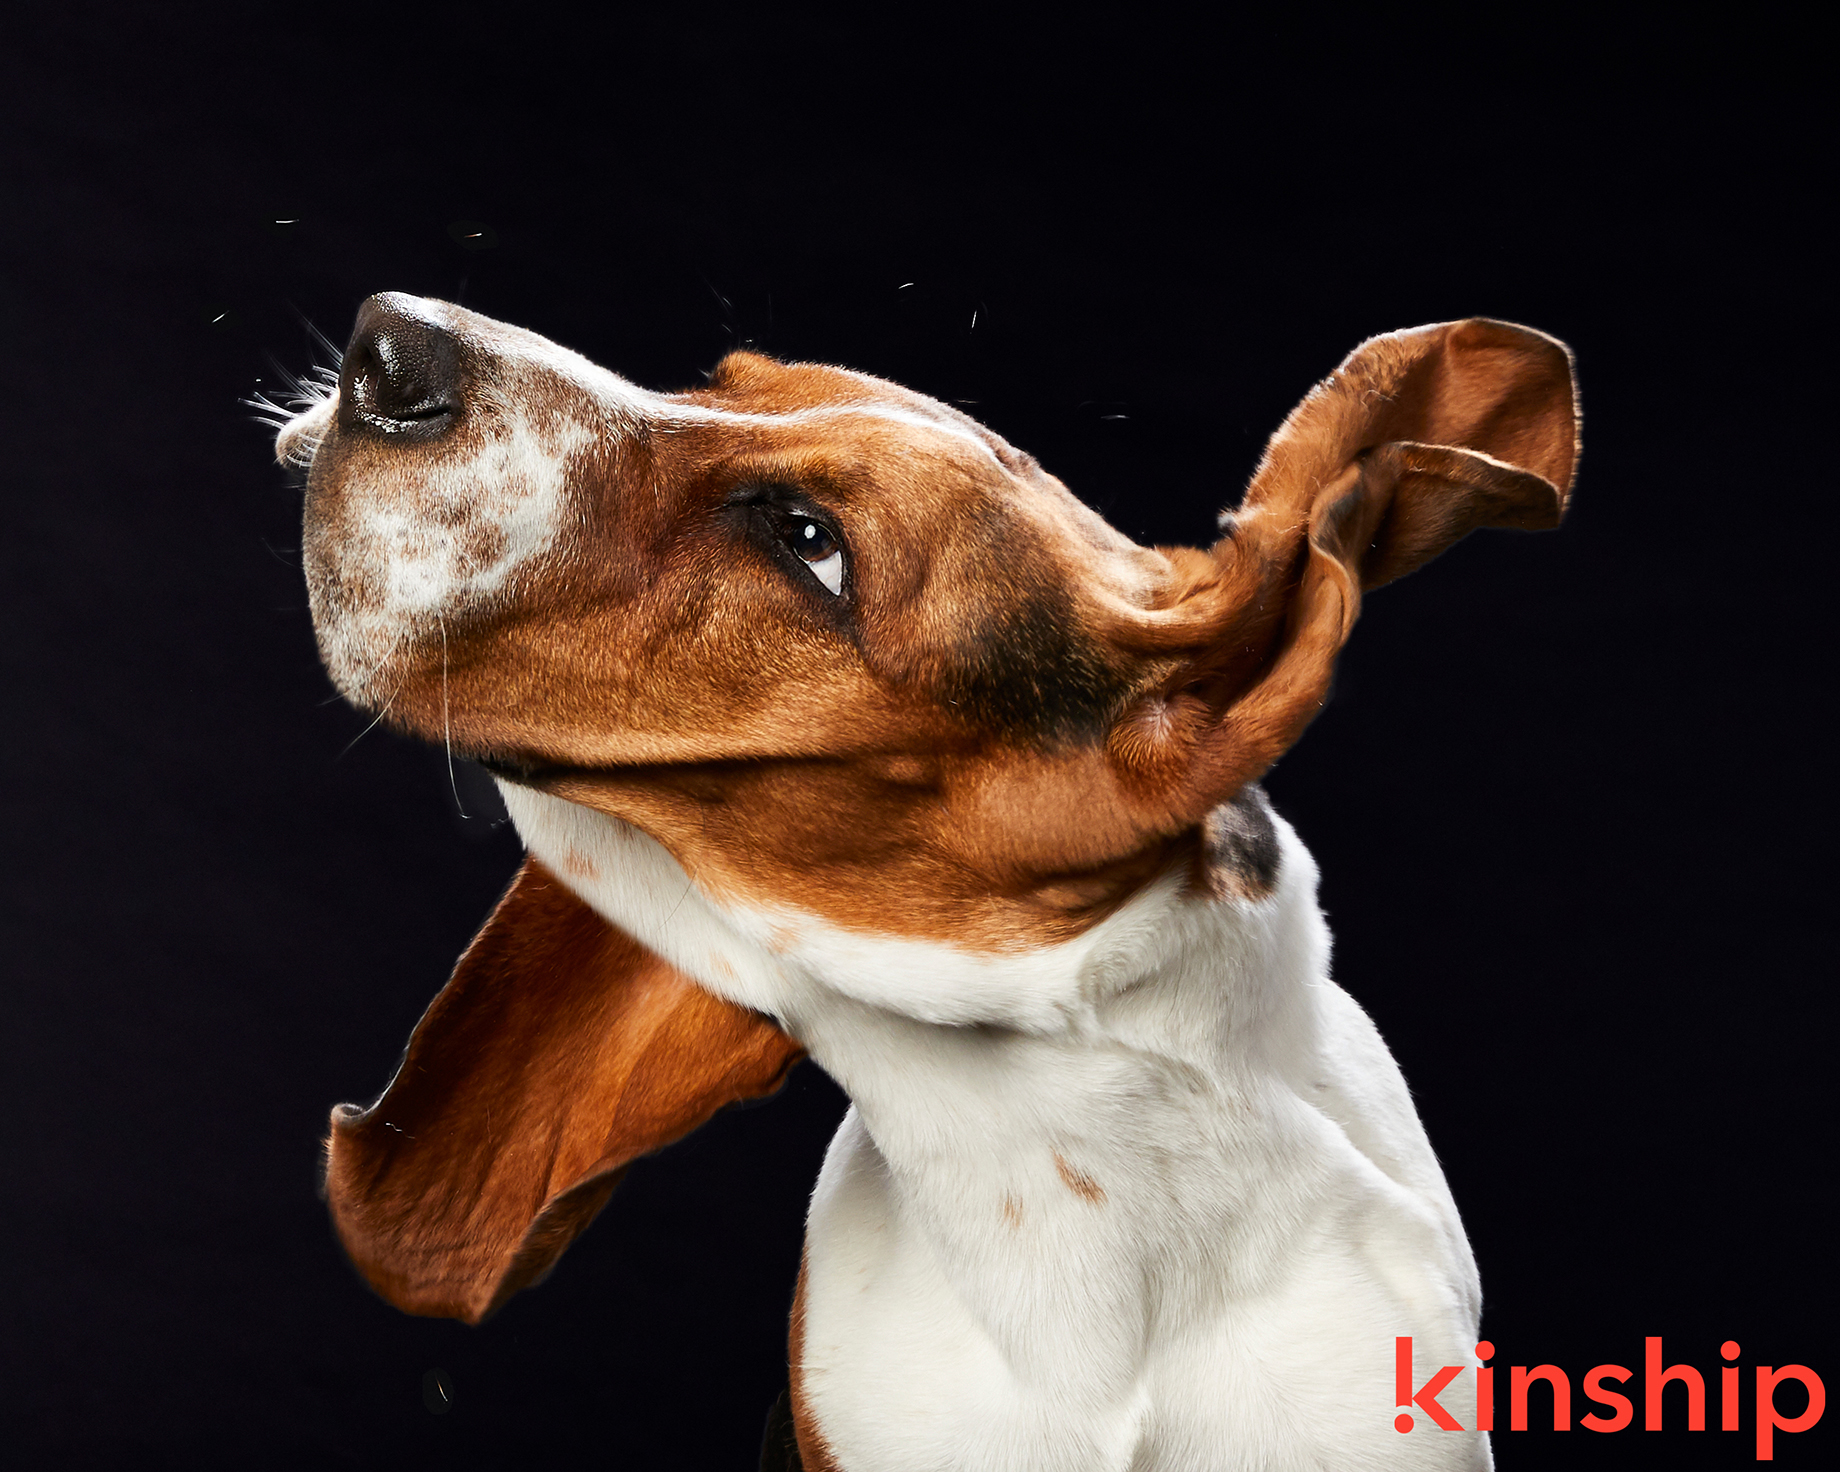 Dog photographed by Mark Rodgers for Kinship.